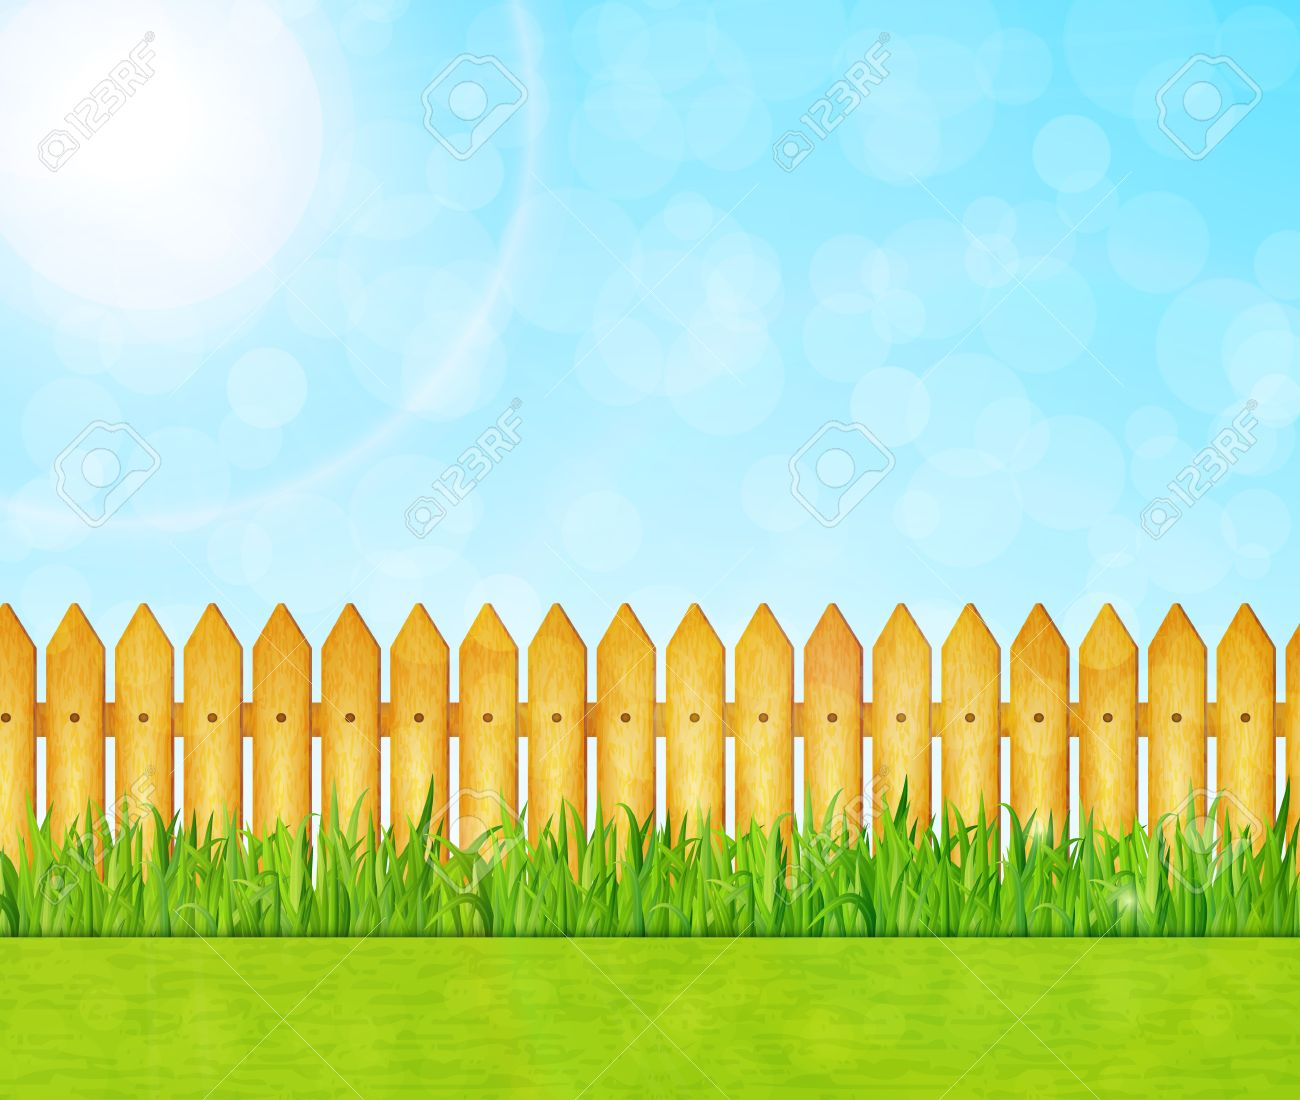 Garden background with green grass and wooden fence vector